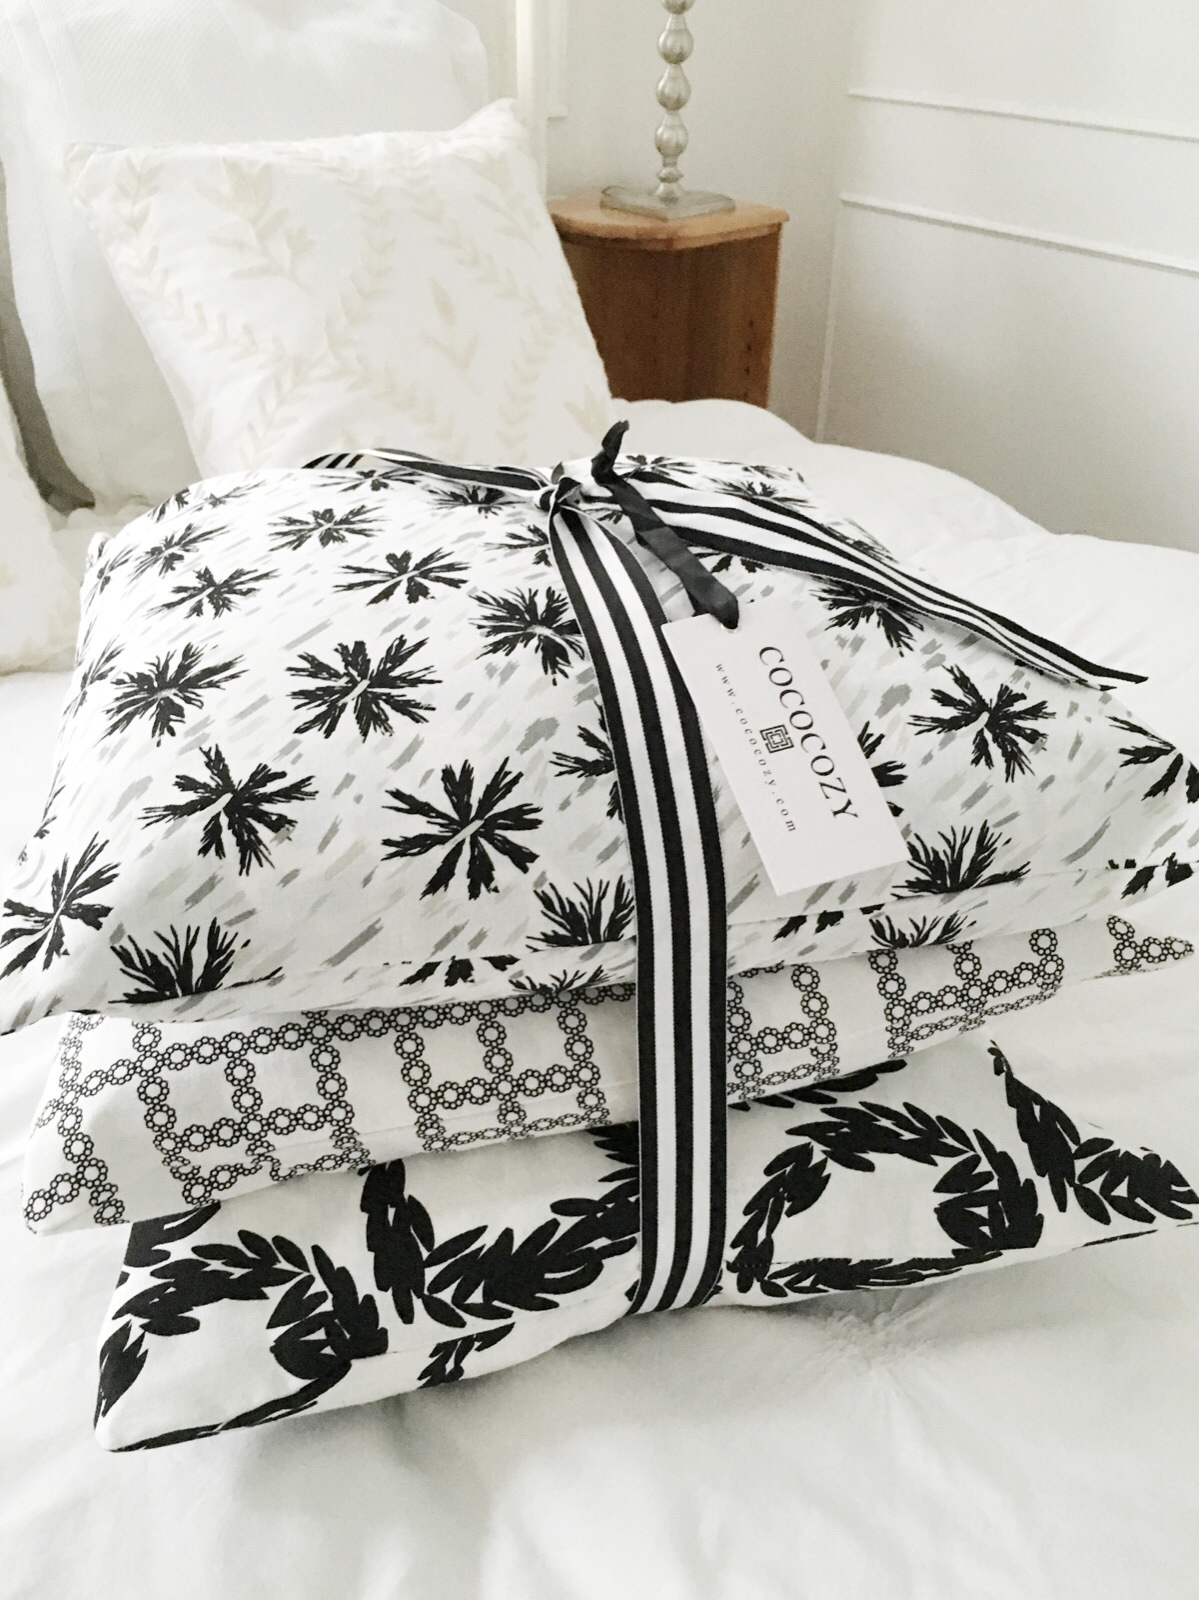 Home Sweet Home Decor – COCOCOZY Black & White Pillows